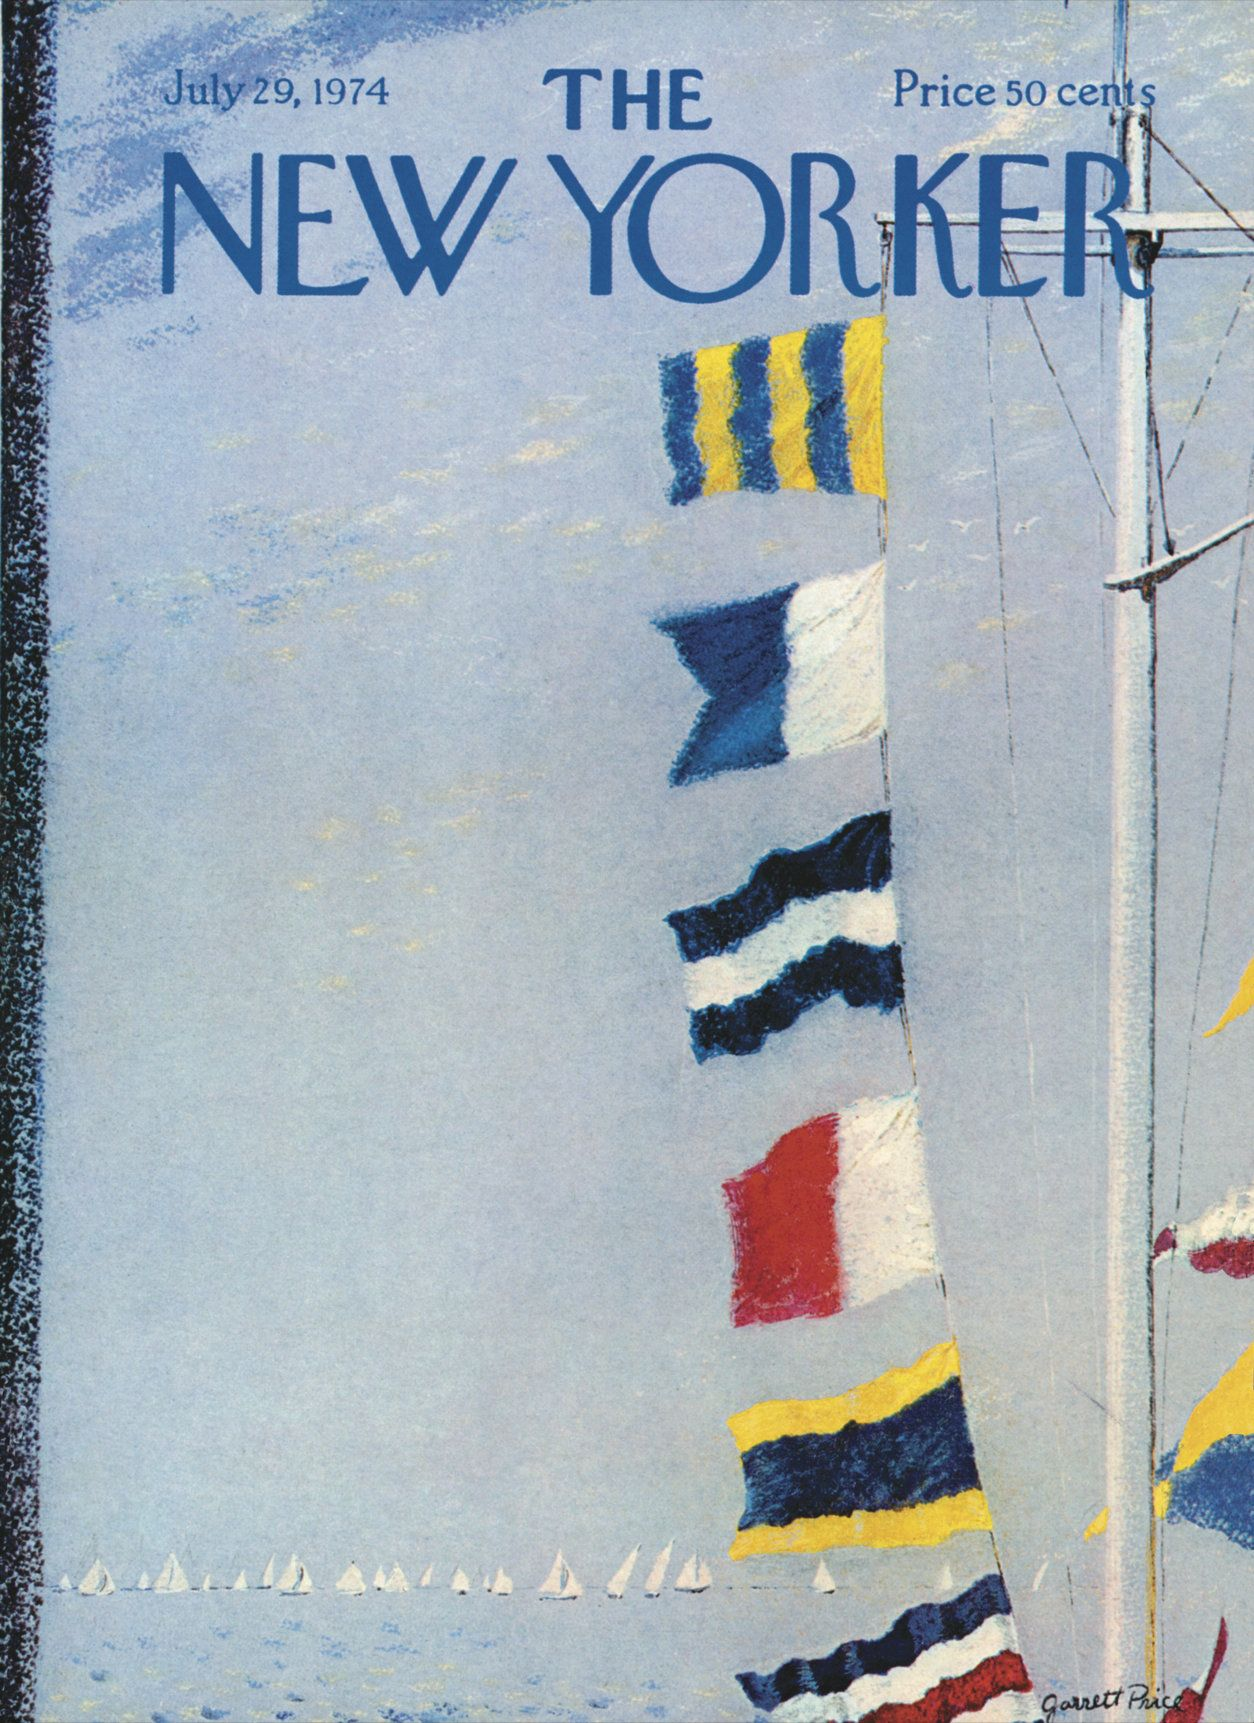 The New Yorker - Monday, July 29, 1974 - Issue # 2580 - Vol. 50 - N° 23 - Cover by : Garrett Price